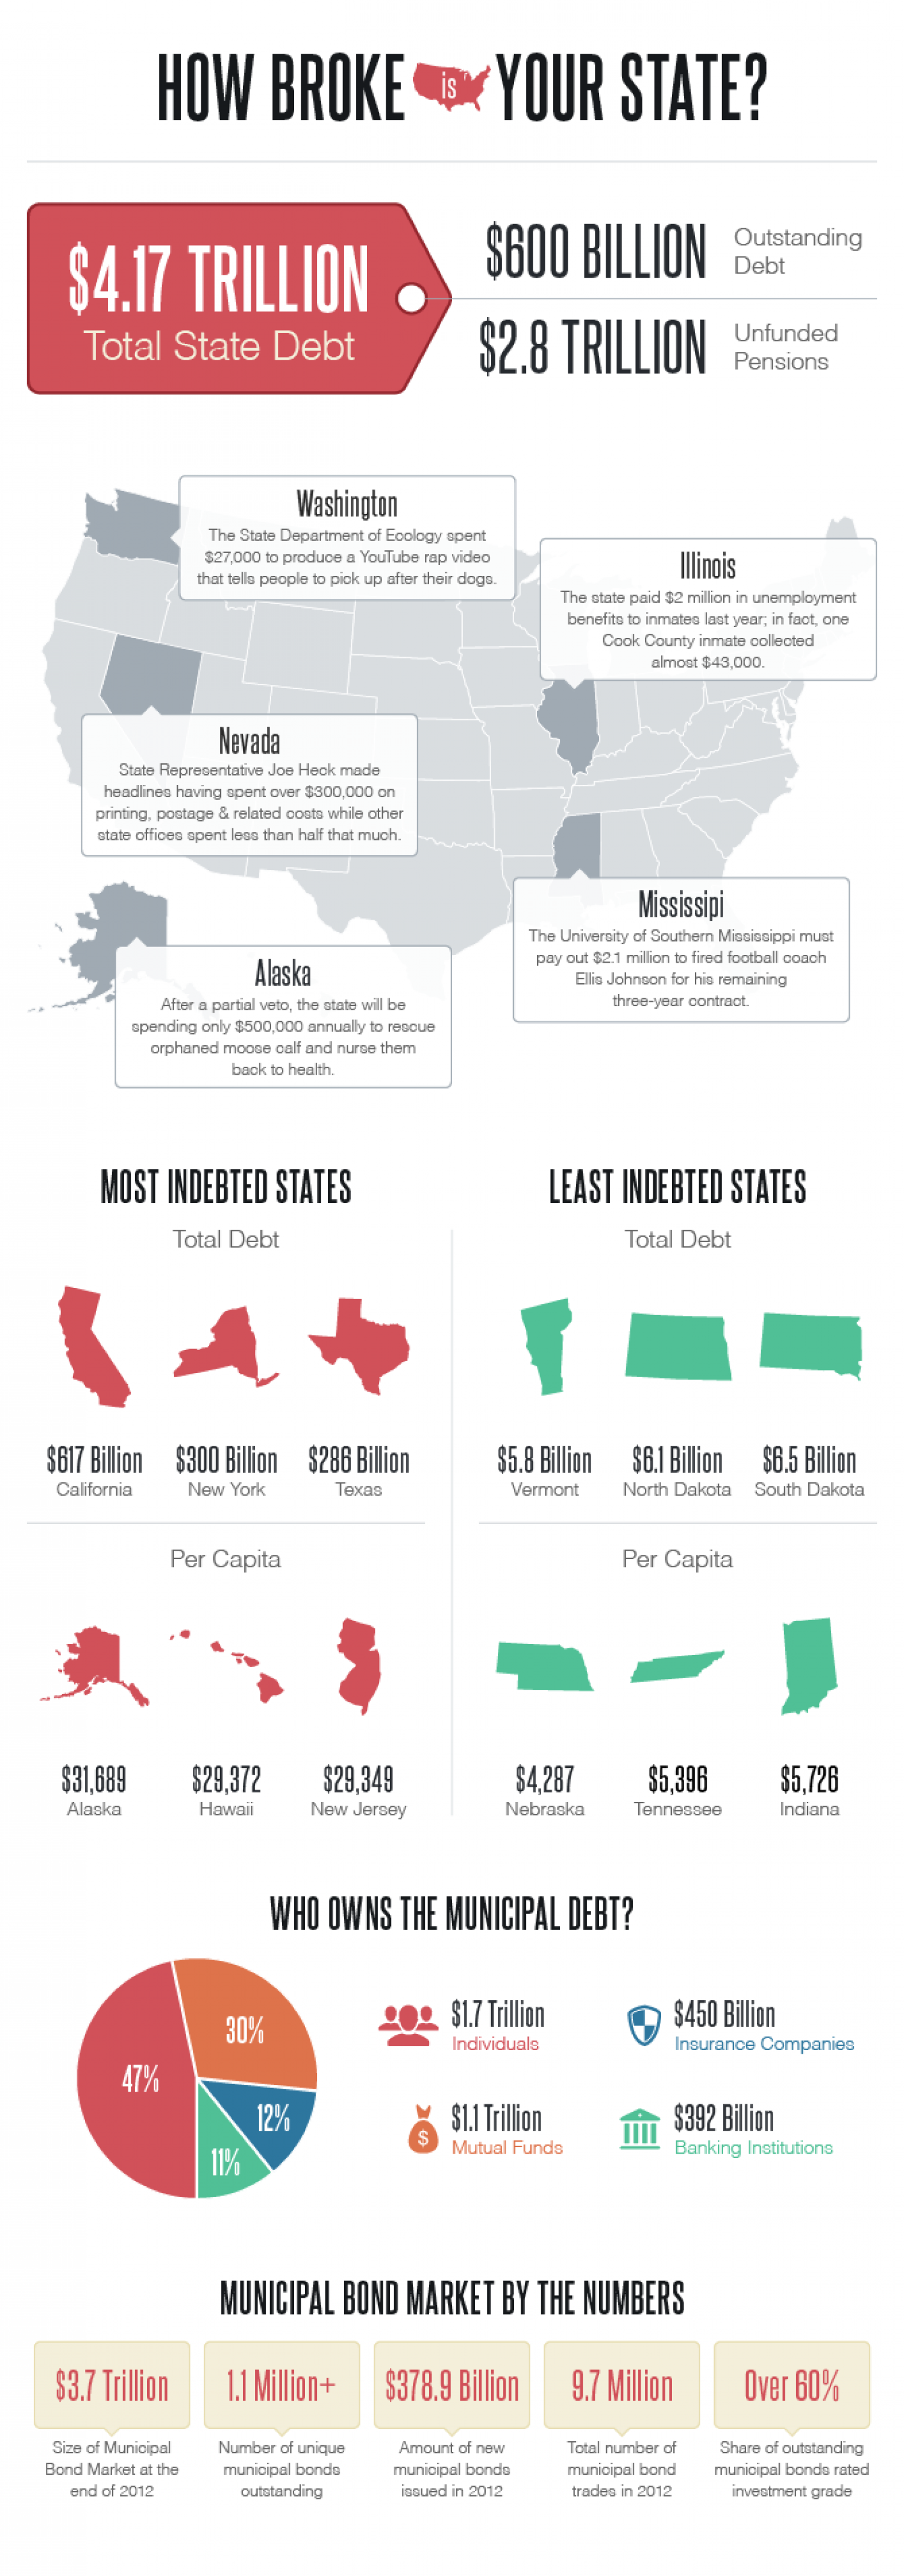 How Broke Is Your State? Infographic